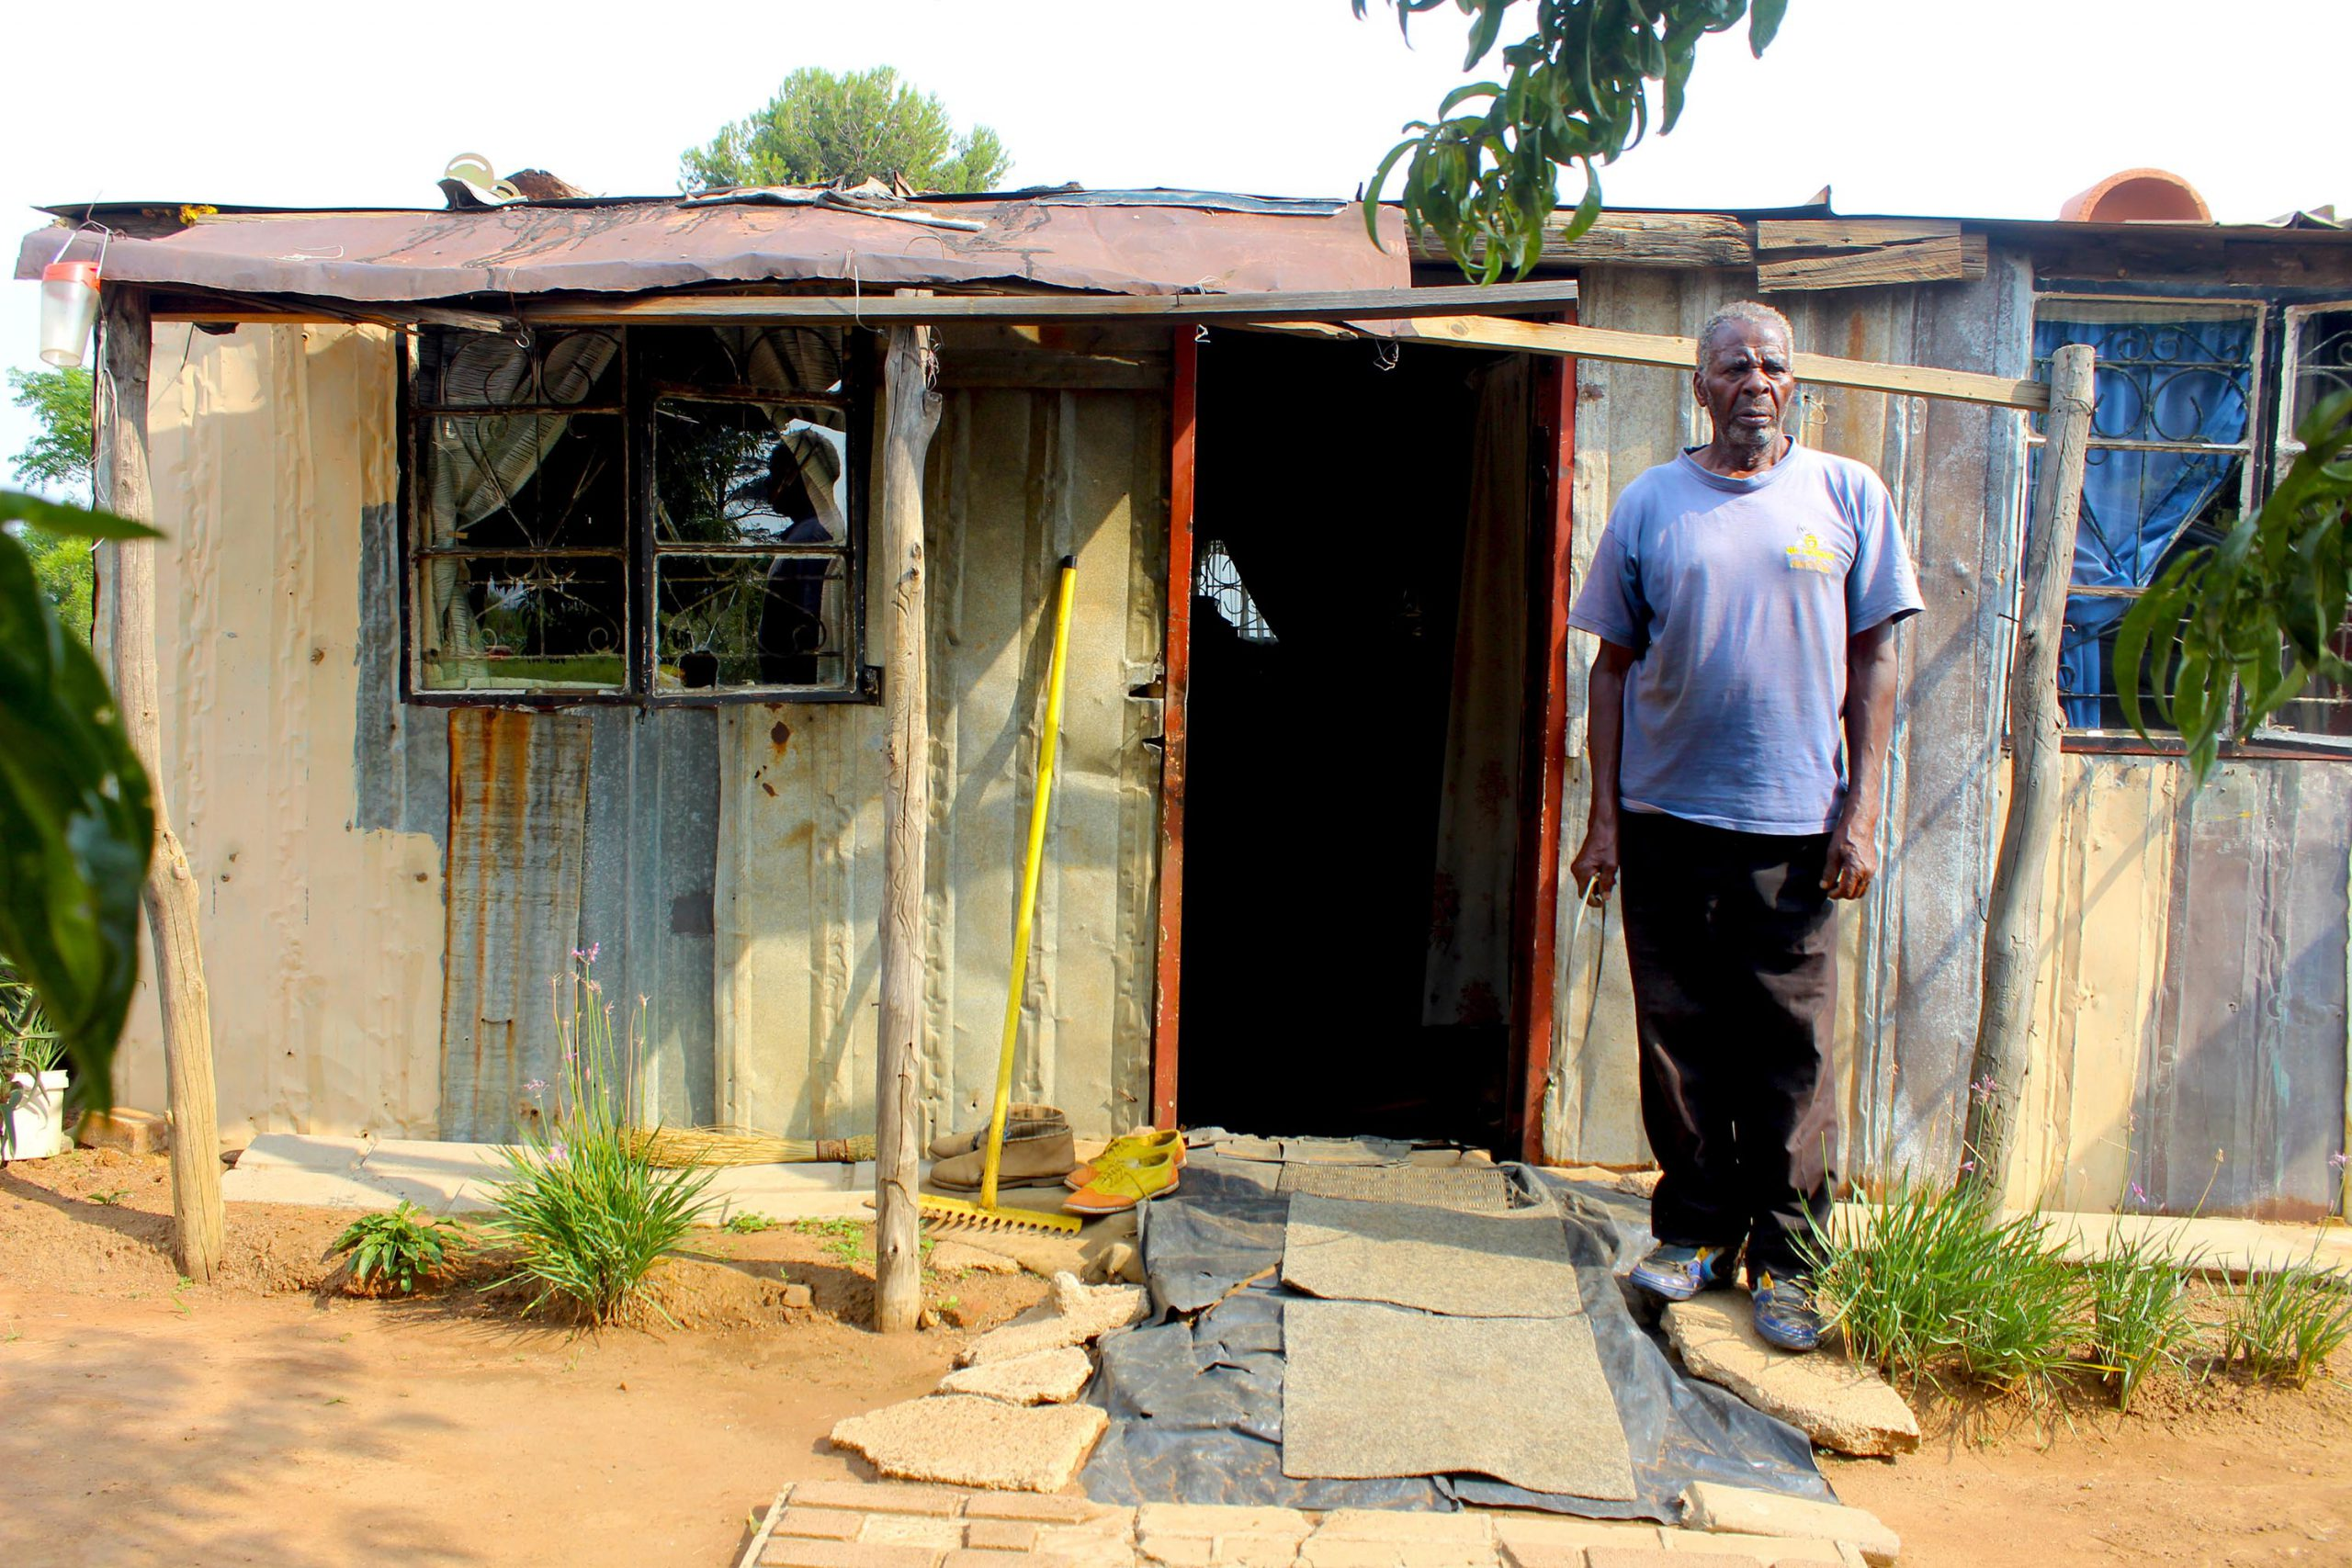 18 March 2019: Mahlomelane Johannes Mthembu outside the shack he has built using his pension money while waiting for the government to build him a house. (Photograph by Funiwe Ngwenya)